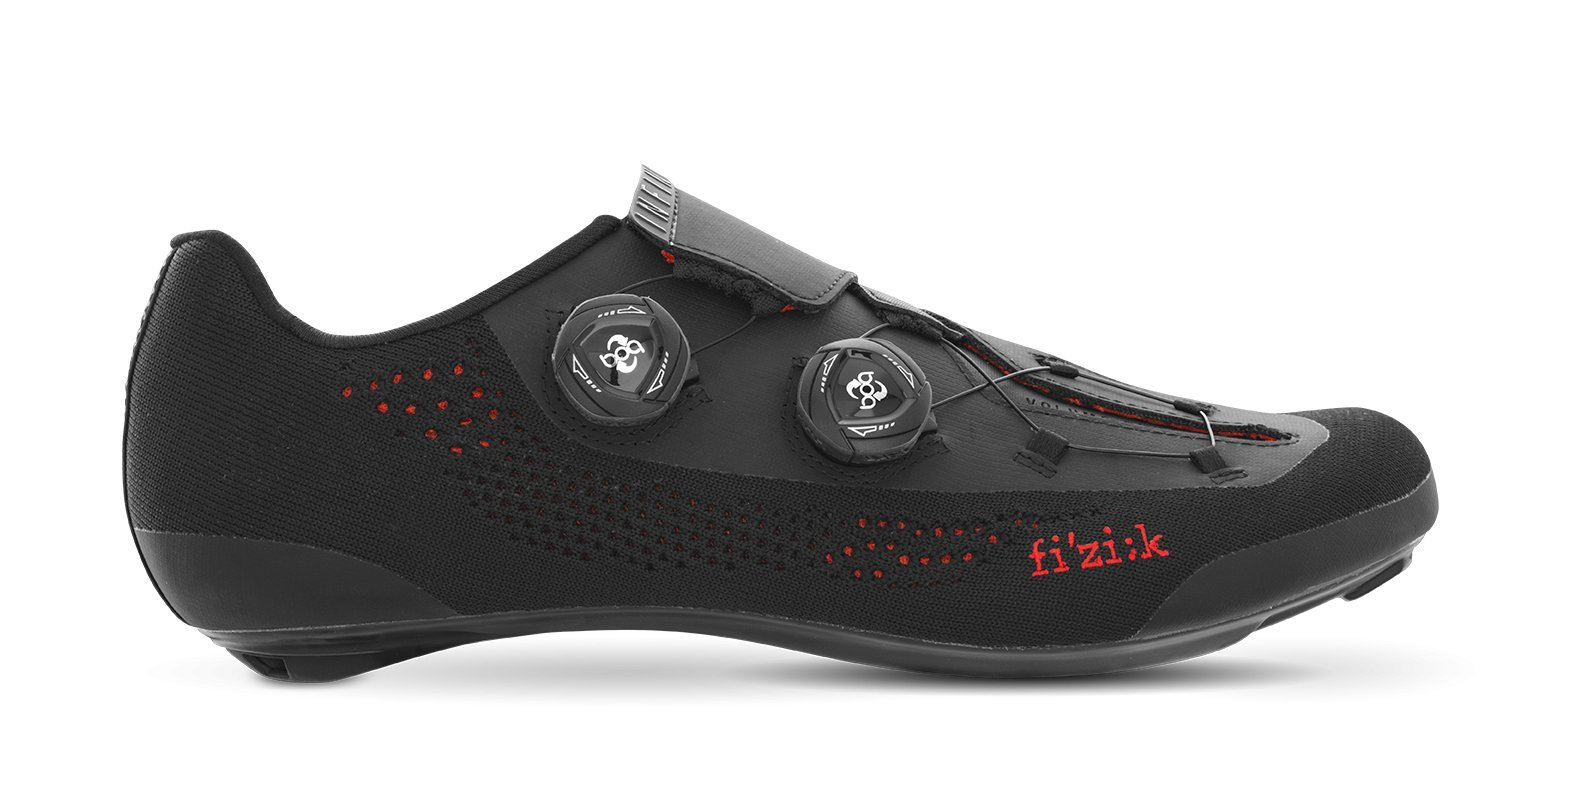 Fizik R1 INFINITO Shoes, Black Knitted, Size 37.5